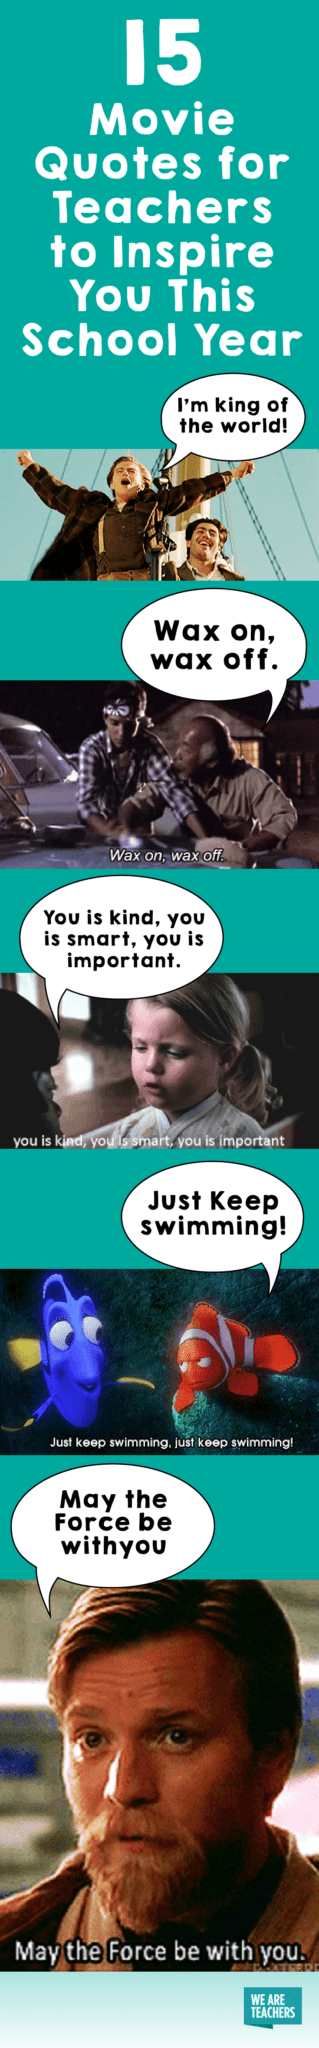 15 Movie Quotes For Teachers To Inspire You This School Year